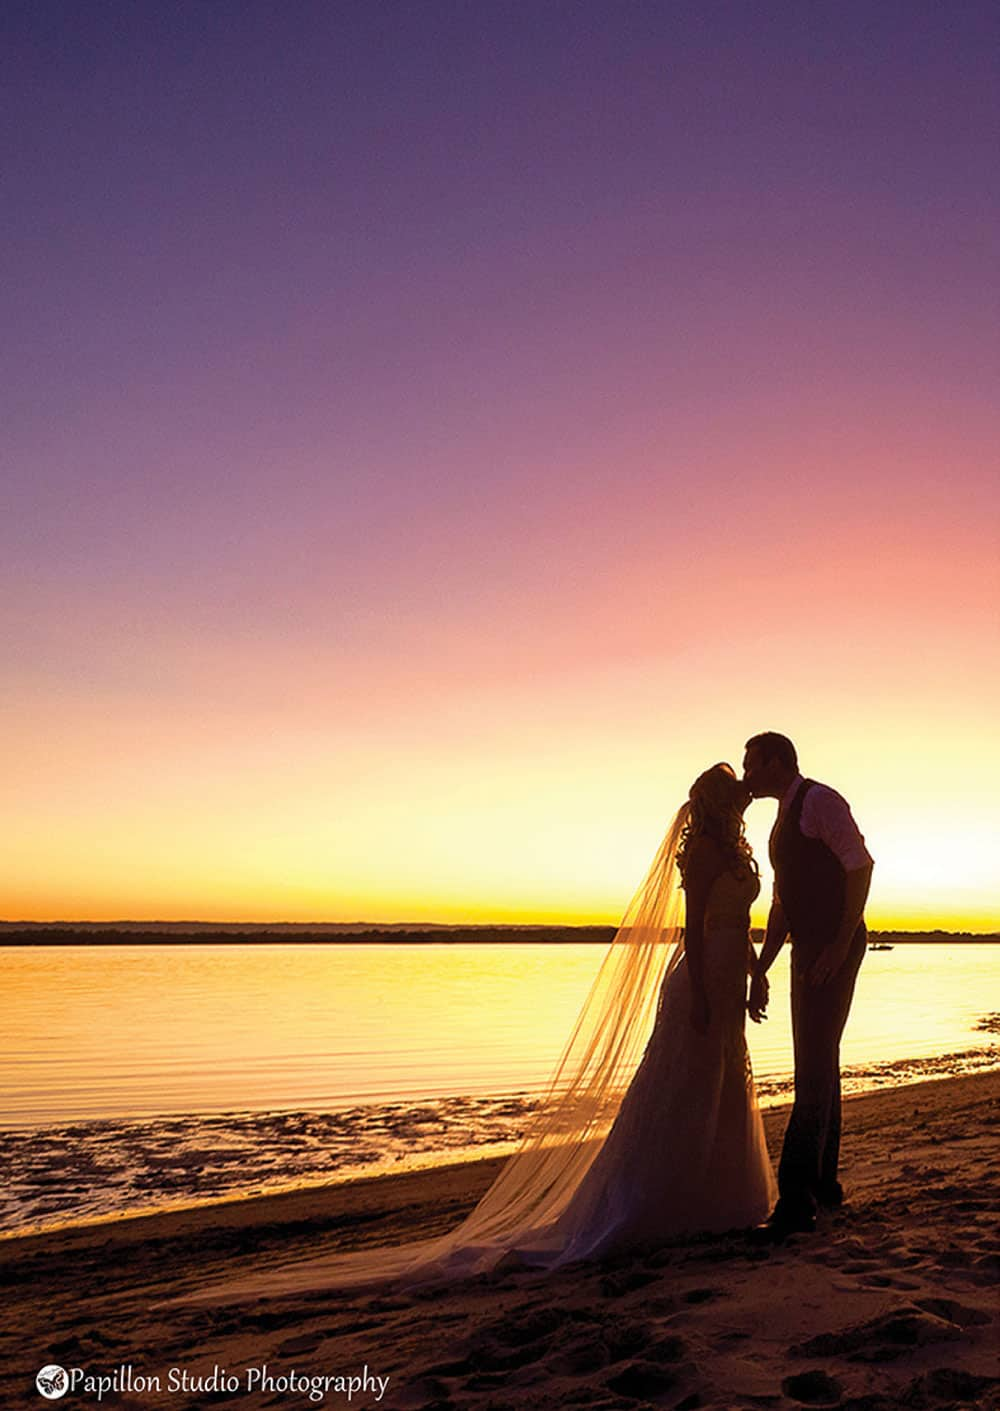 A Brisbane bayside venue. Bride and groom on the beach at sunset